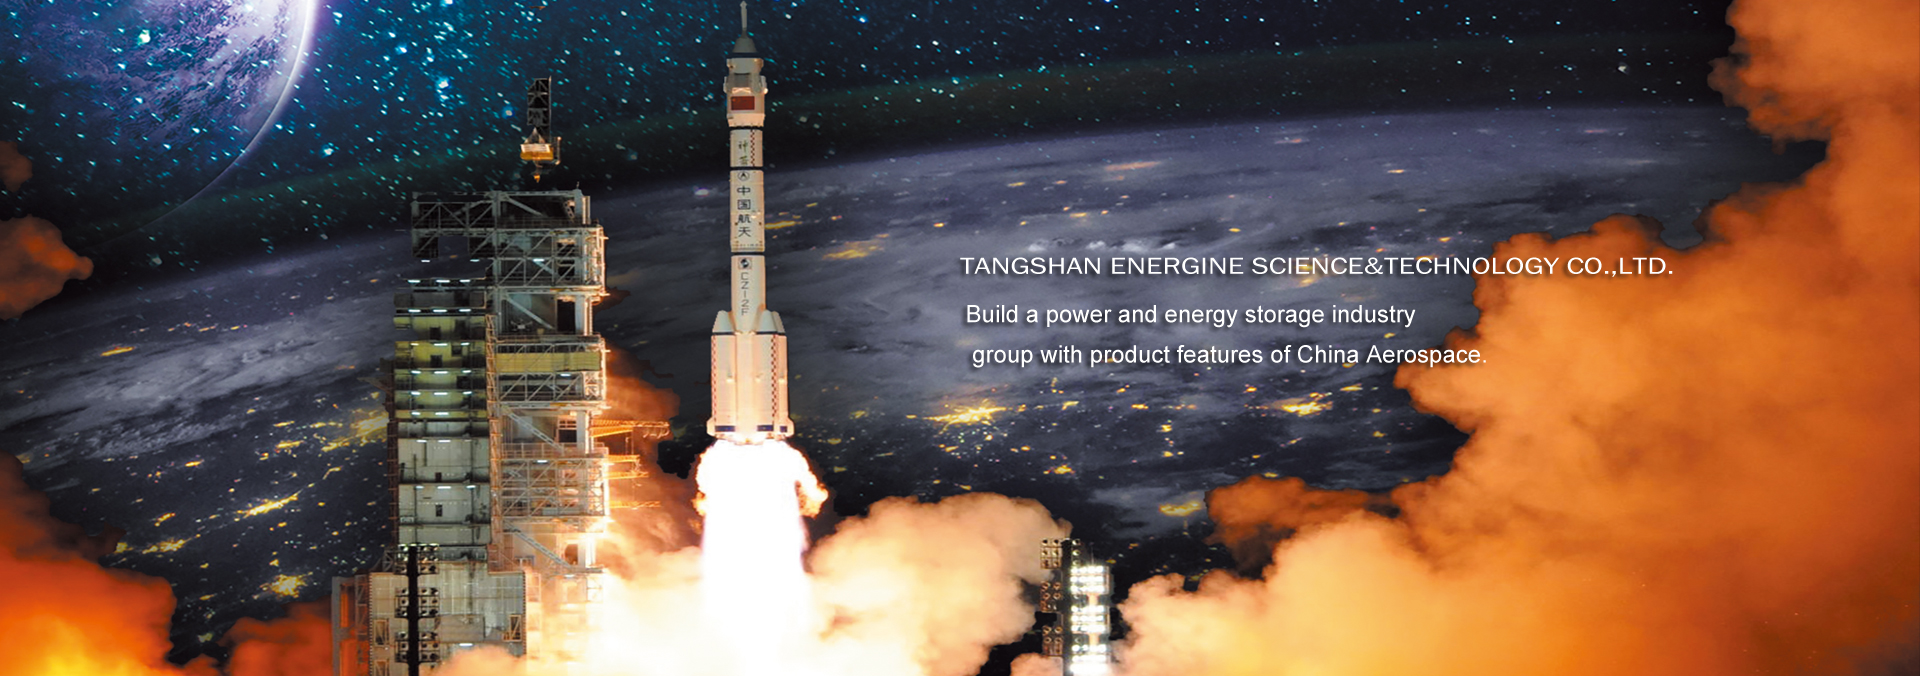 Tangshan Energine Science & Technology Co., Ltd.